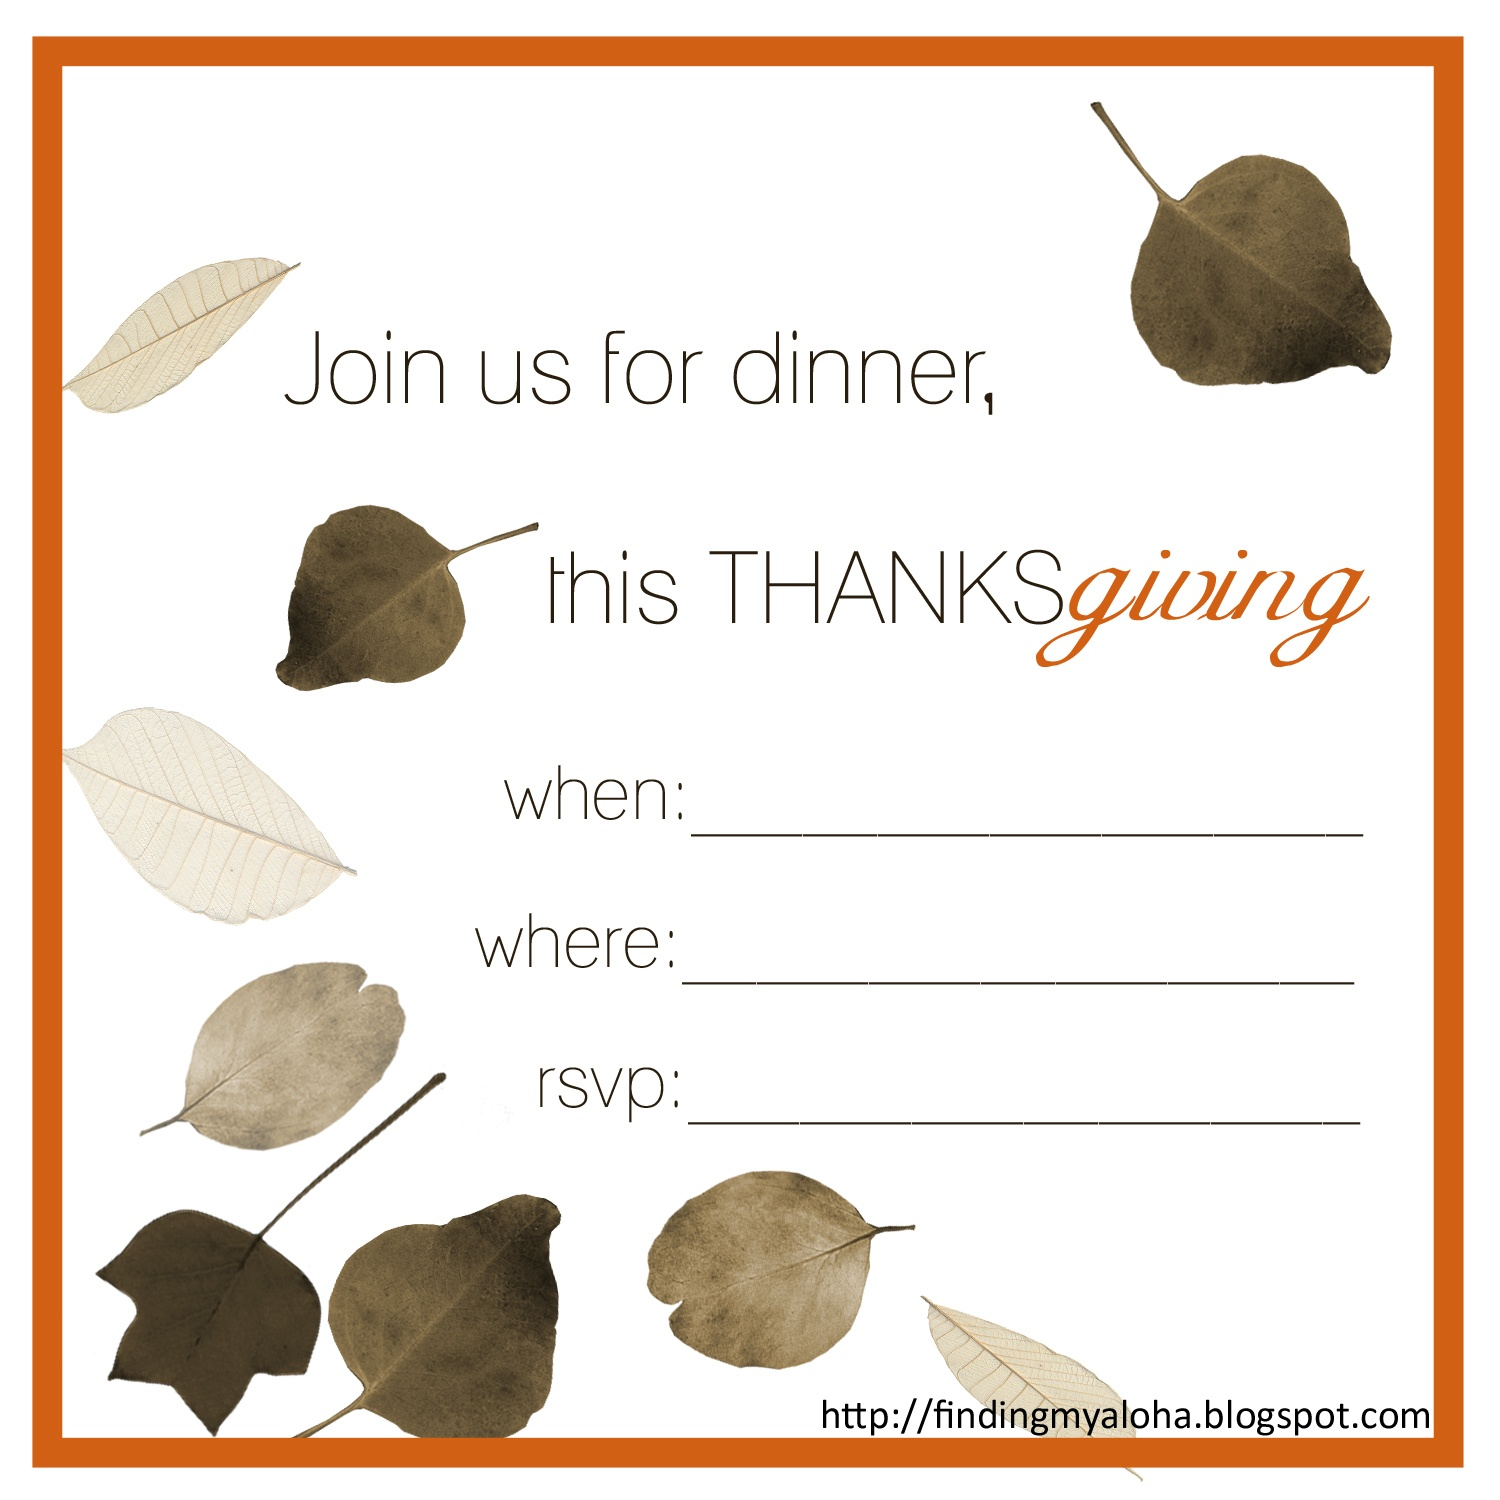 Free Thanksgiving Invitation Templates. Free Printable Thanksgiving - Free Printable Thanksgiving Invitation Templates